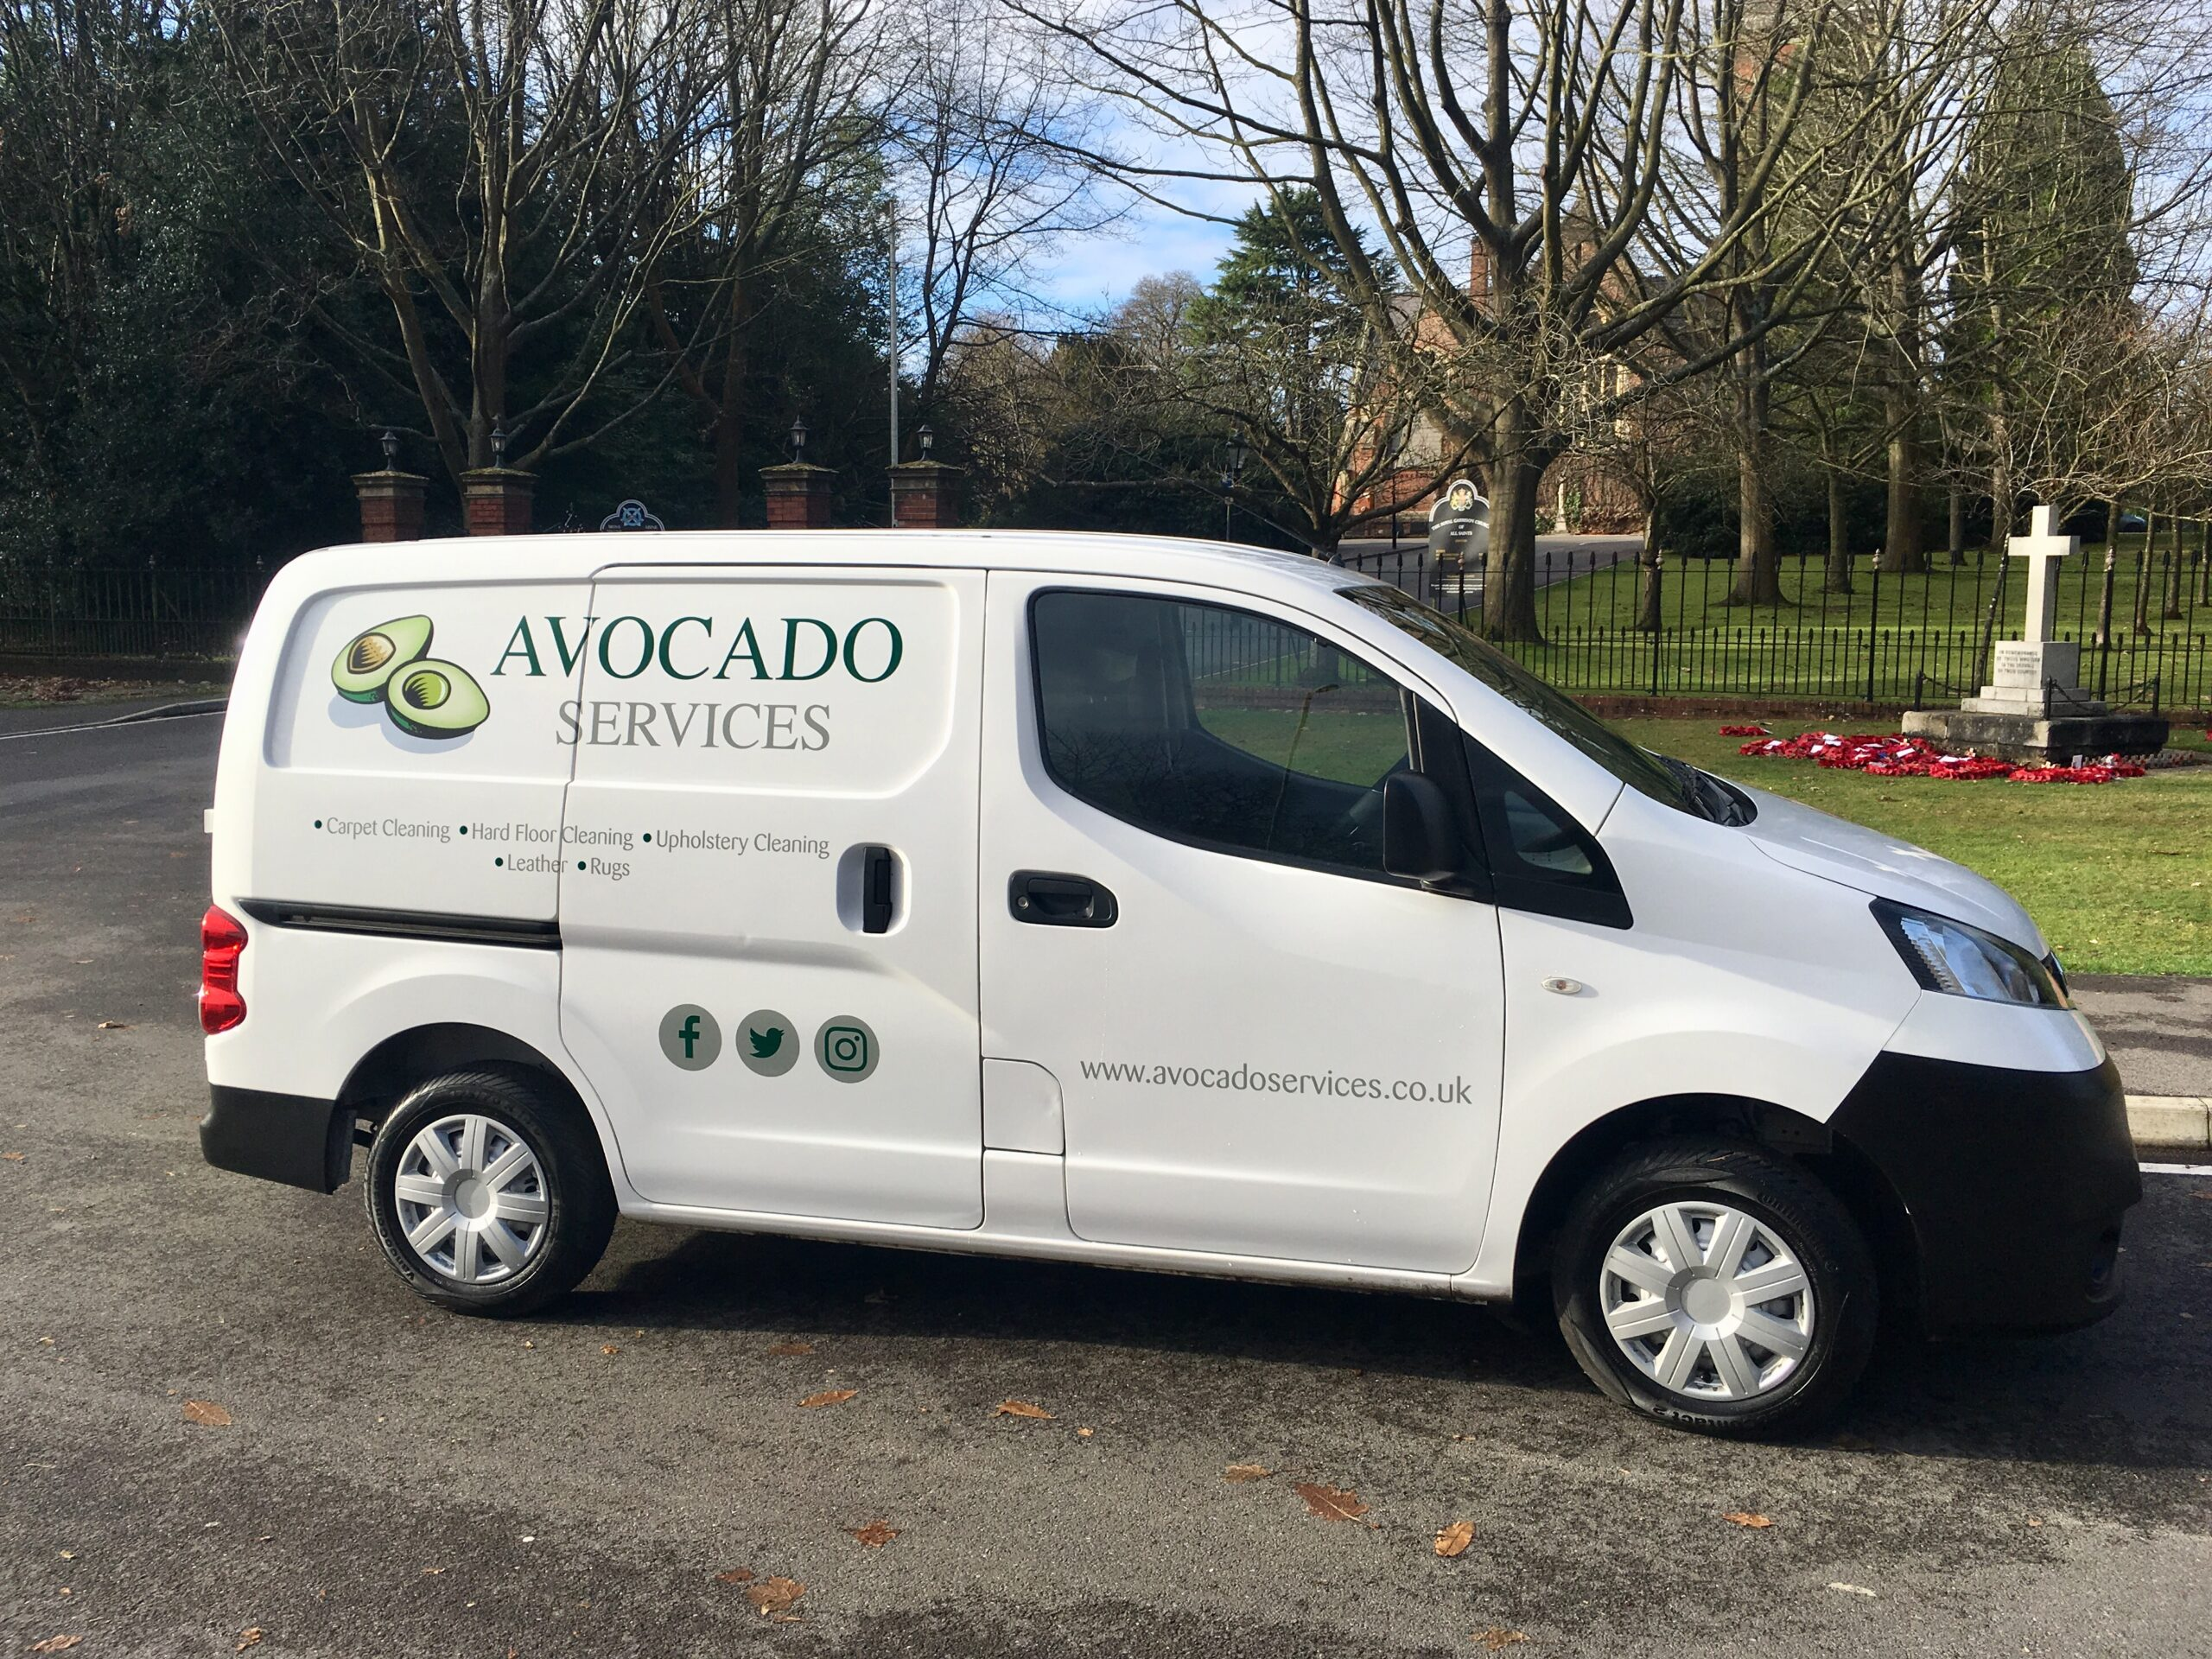 Avocado Services Van